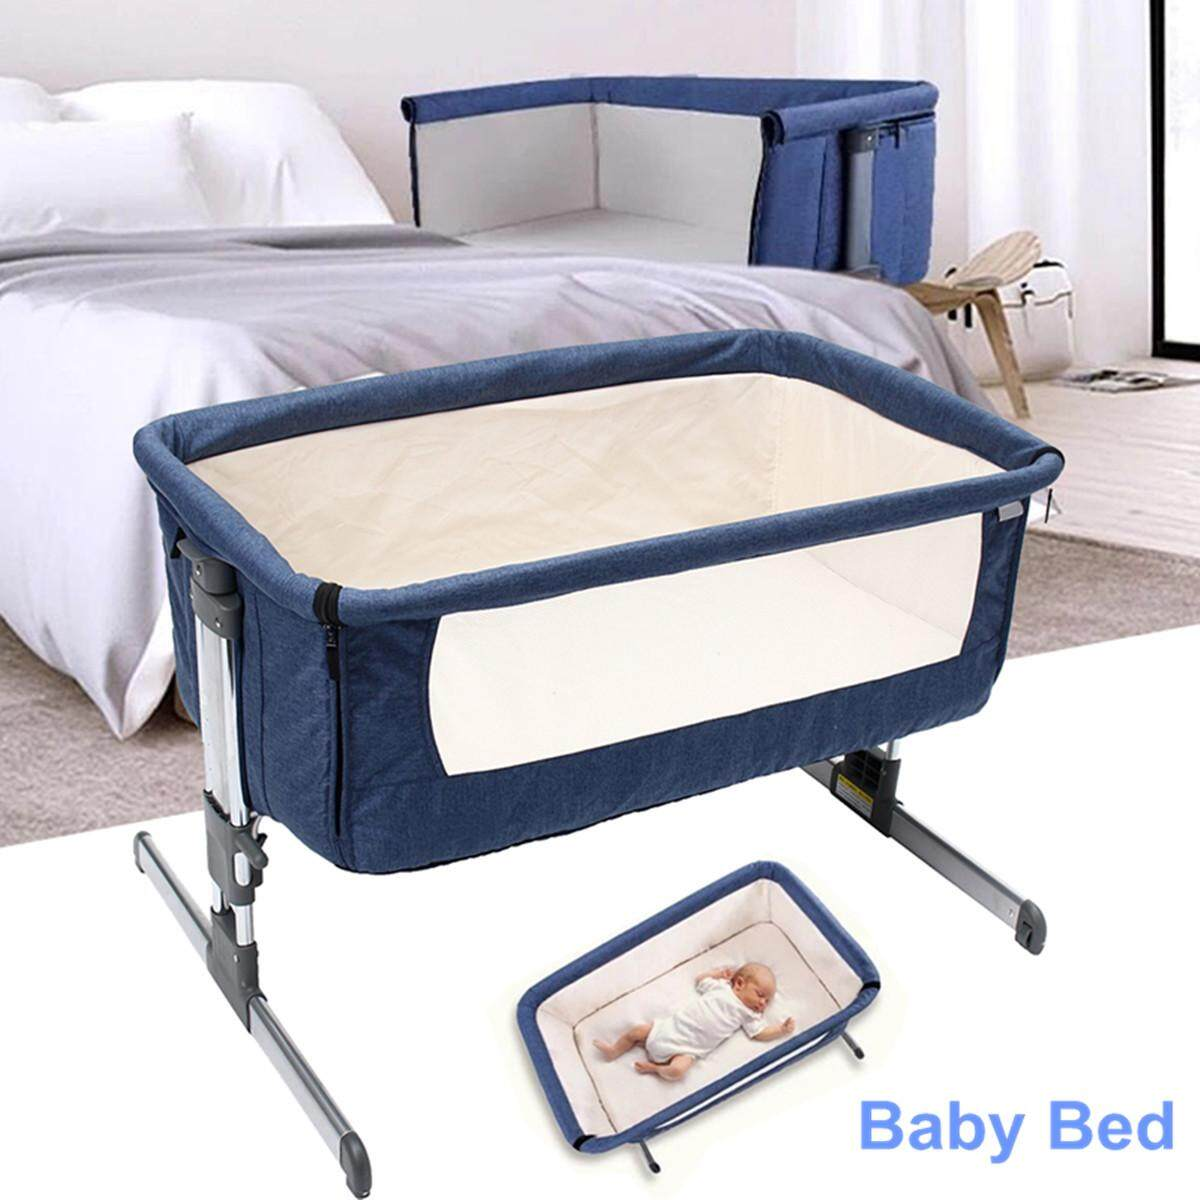 Cosy Time Beside Time Beside Co Sleeper Blue Bassinet Cot Crib Baby Bed By Ferry.